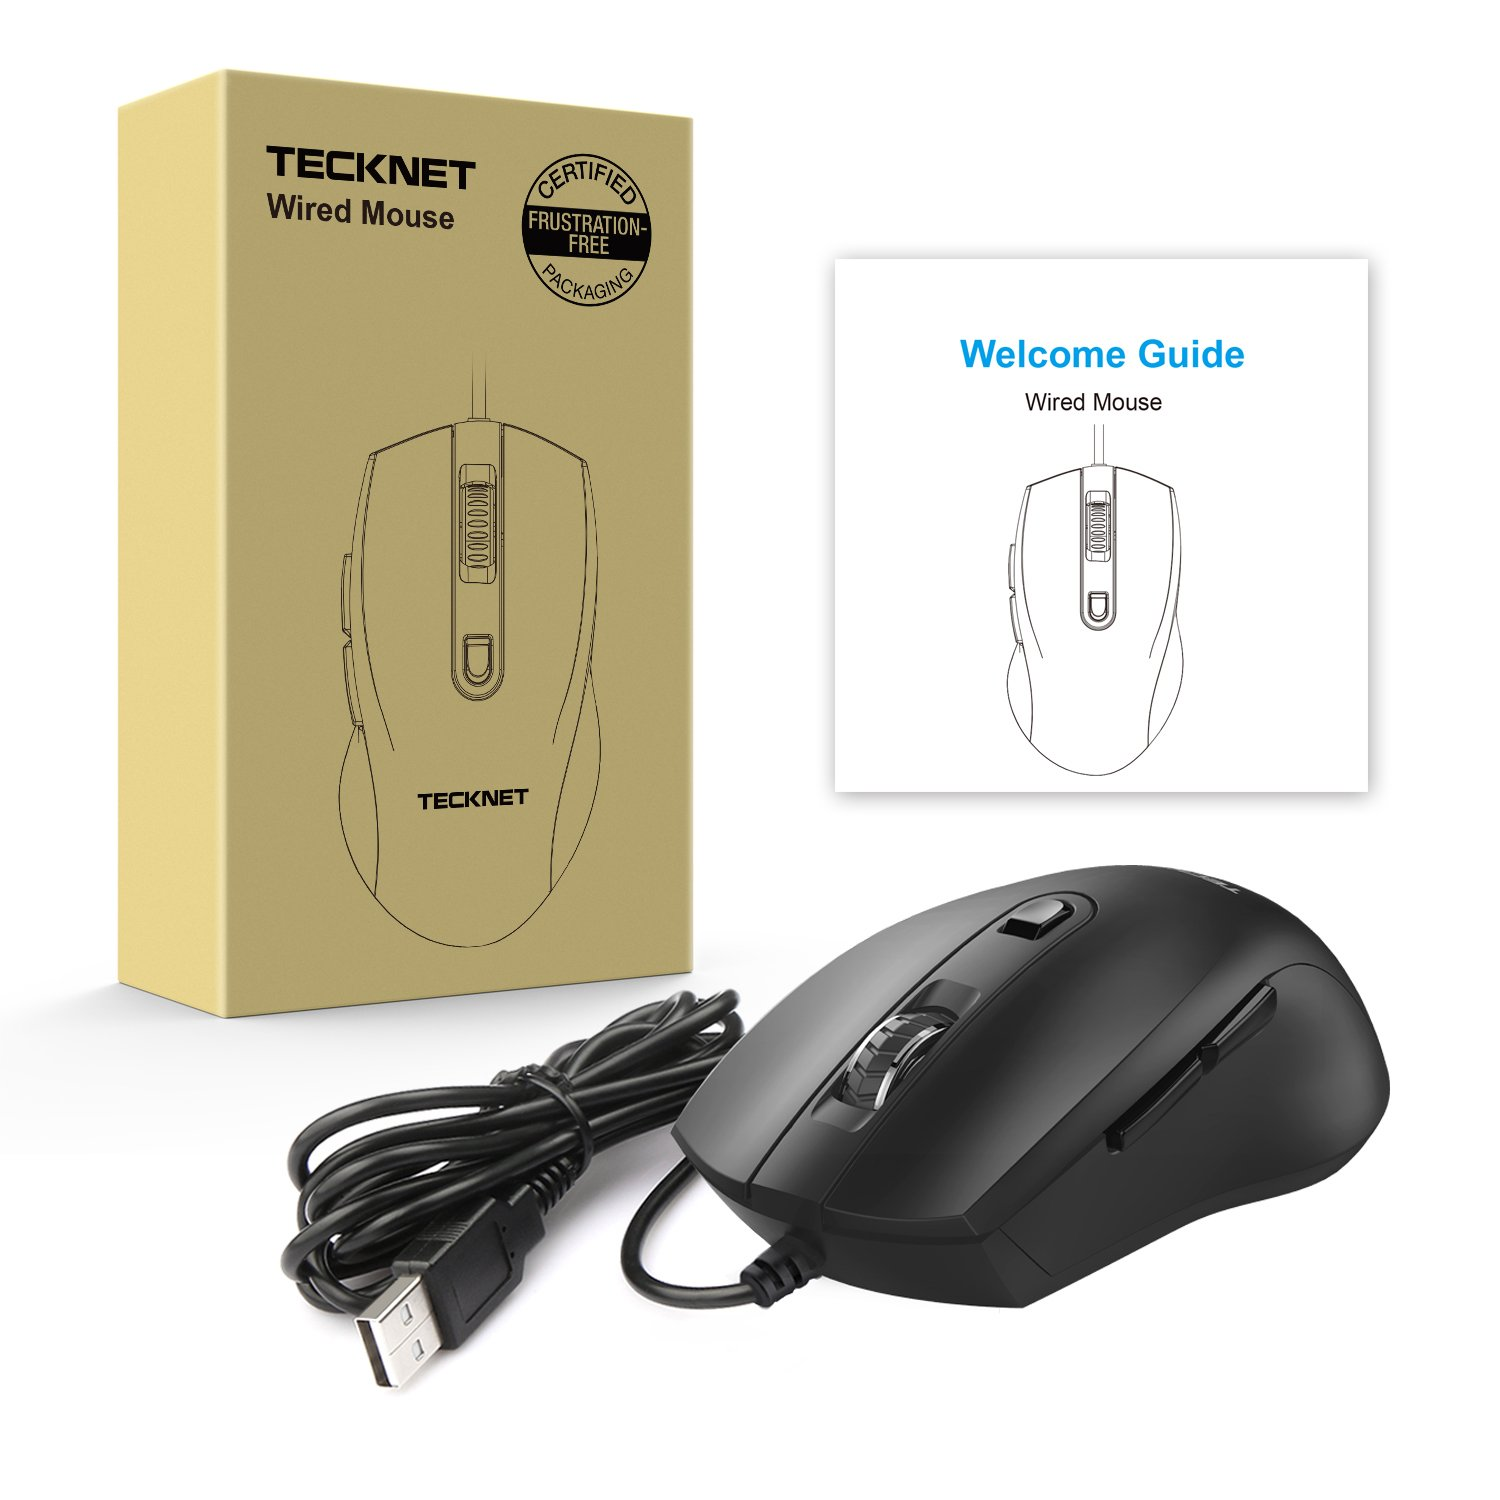 TeckNet 6-Button Ergonomic USB Wired Optical Mouse for PC, Laptop and Computer, 1600/1000 DPI